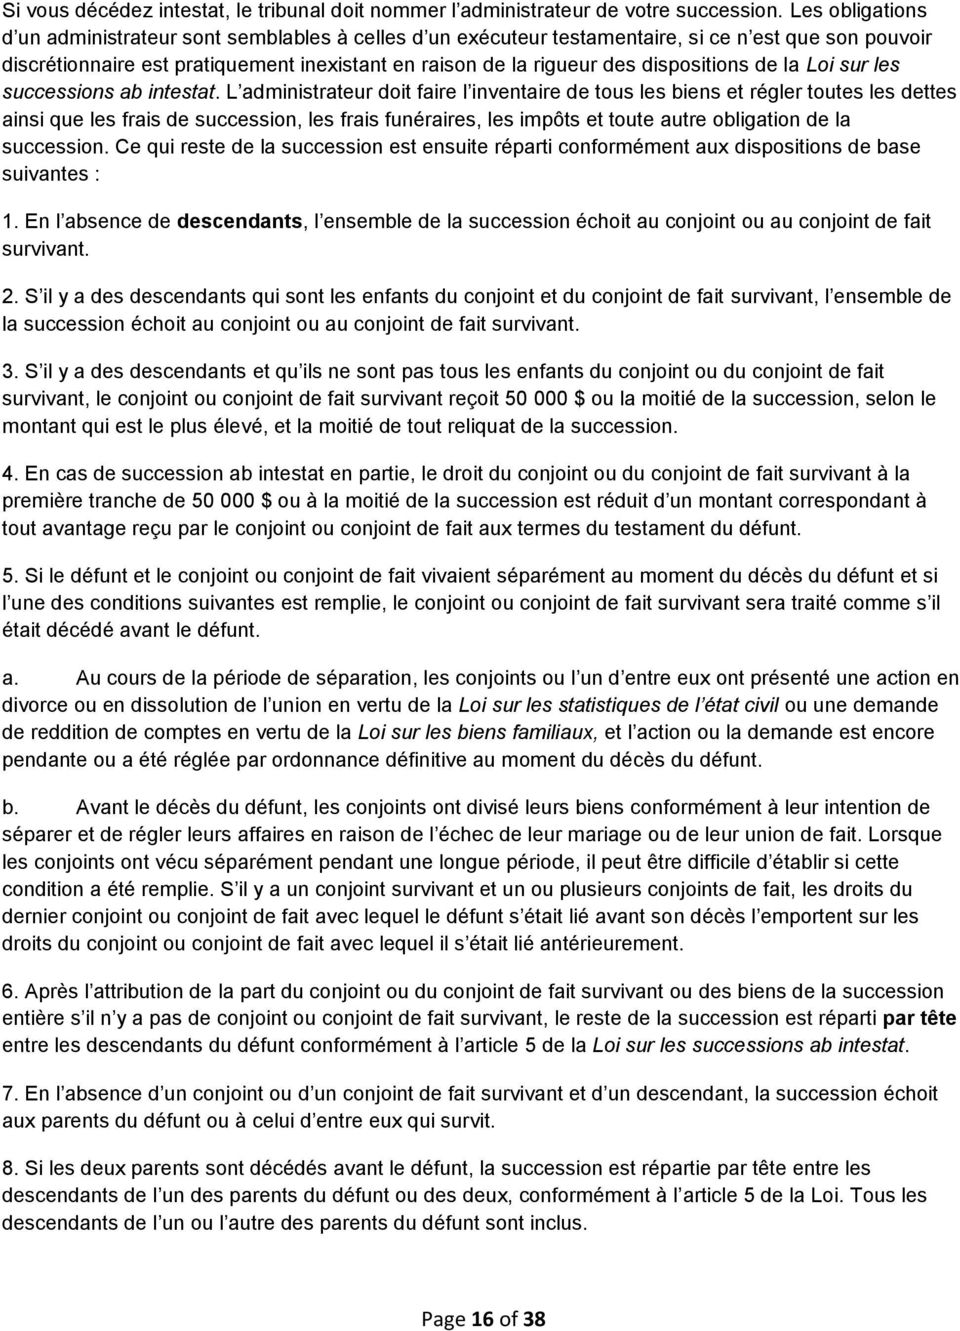 dispositions de la Loi sur les successions ab intestat.